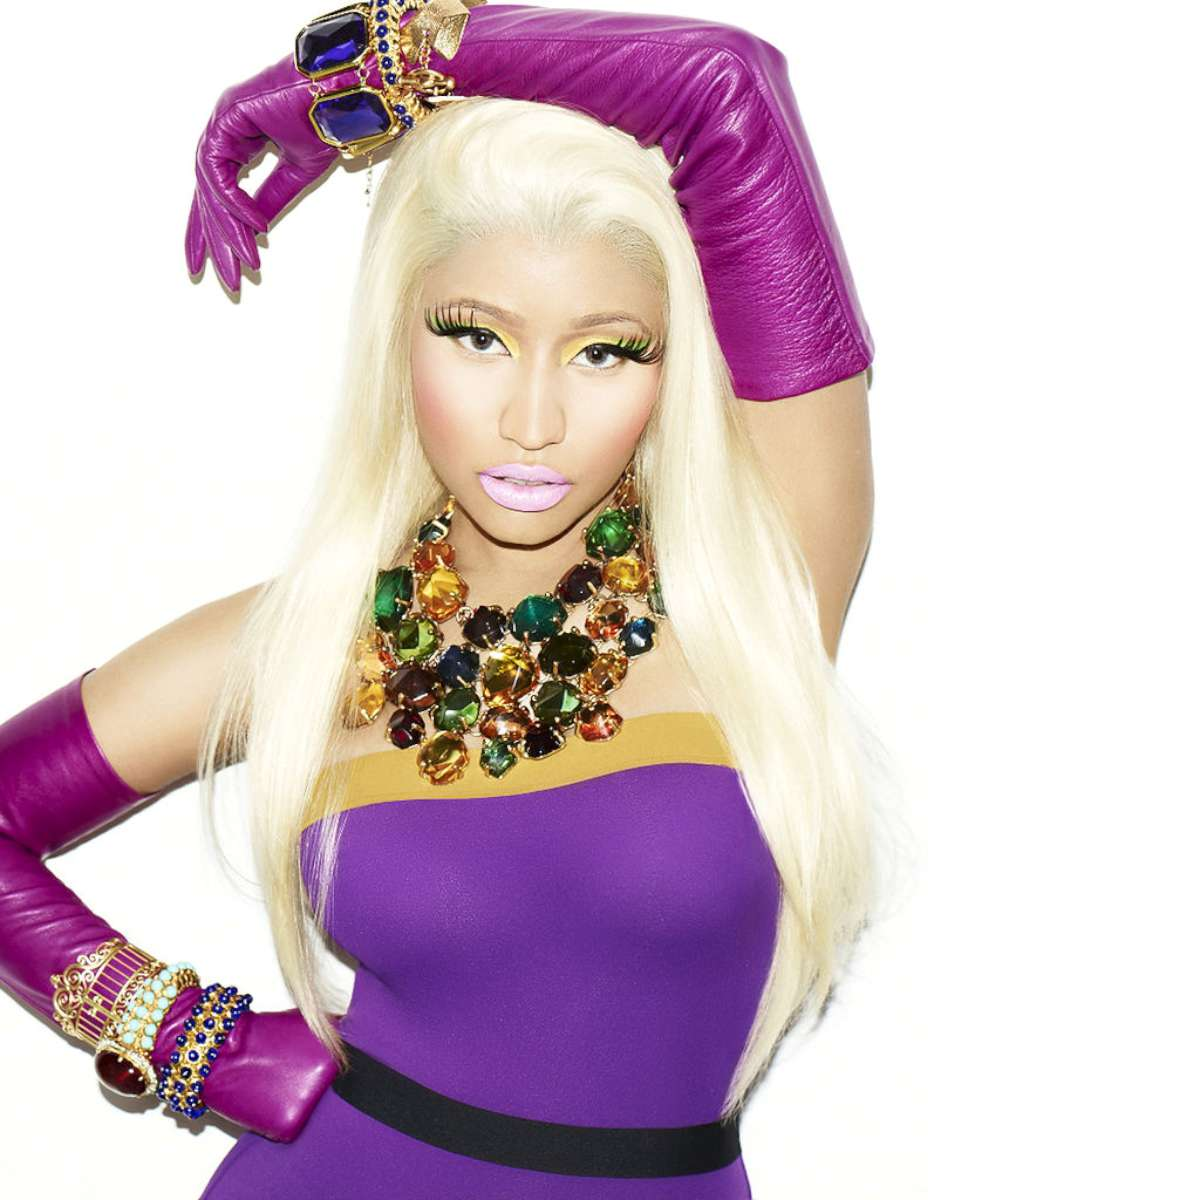 http://2.bp.blogspot.com/-CLQR-dyPtmA/USbpKuToKQI/AAAAAAAACuo/QLawp_KgrlE/s1600/Nicki-Minaj-Sexy-Hd-Free-Wallpaper-2013-Windows-Tumblr.jpg